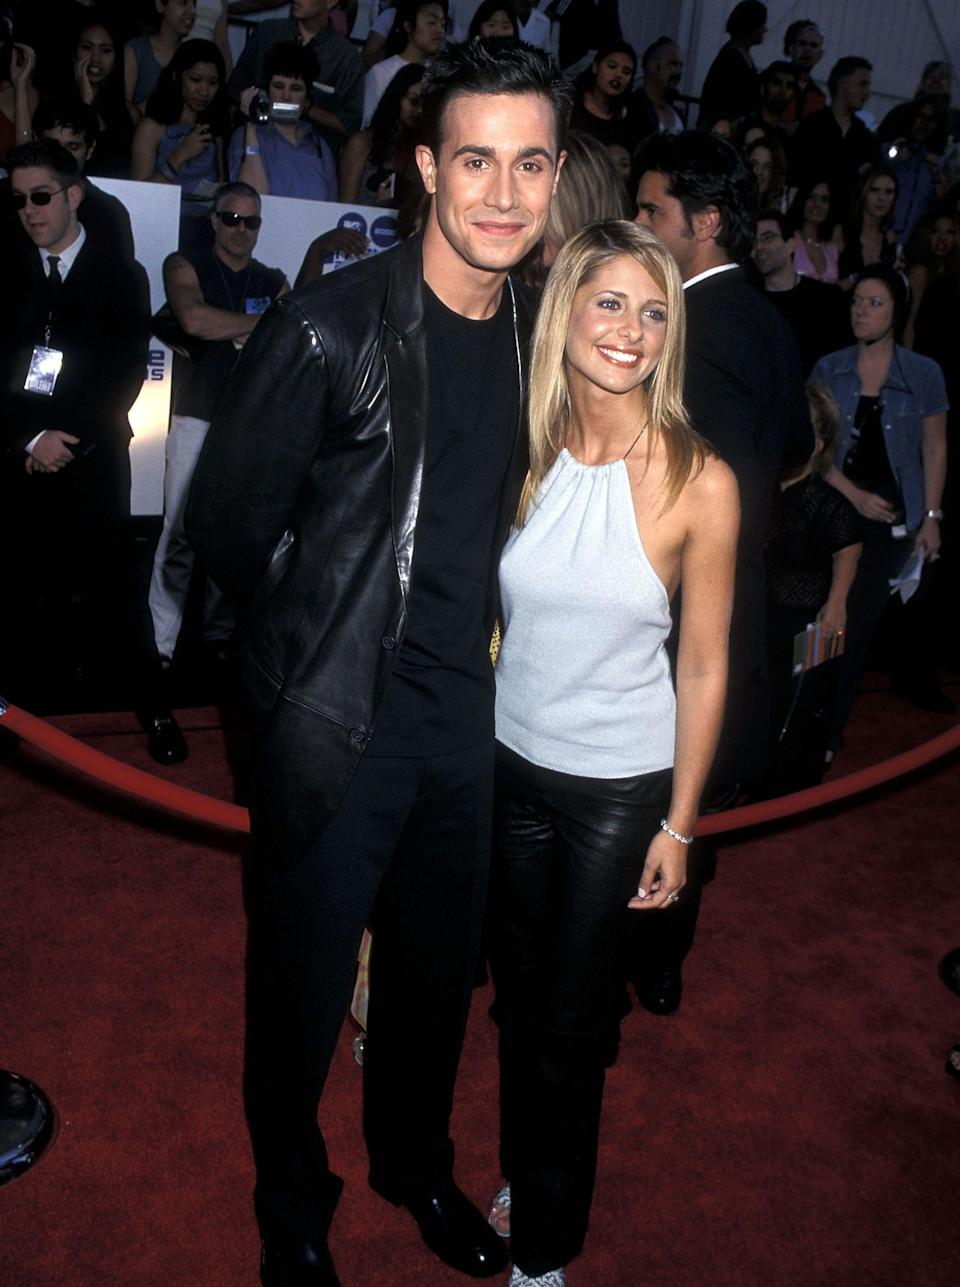 "<p>It isn't unusual for friends to set each other up—inviting two people you think might vibe to a party or a dinner so they can get to know each other. But in Sarah Michelle Gellar and Freddie Prinze Jr.'s case, they got together because their friend never actually showed up. </p><p>In 2000, Sarah and Freddie made plans to grab dinner with a mutual pal. But when that friend missed her flight, Sarah and Freddie (who met when they starred in the 1997 film <em>I Know What You Did Last Summer) </em>decided to go ahead with their plans anyway. ""We'd had tons of dinners before and for some reason it just felt different that night, and organically it just transitioned into something else,"" Sarah told <em><a href=""https://www.youtube.com/watch?v=64wvMKTjwD0"" rel=""nofollow noopener"" target=""_blank"" data-ylk=""slk:Us Weekly"" class=""link rapid-noclick-resp"">Us Weekly</a>. </em></p><p>One marriage, two kids, and 20 years later, ""we still go to that restaurant for dinner,"" Sarah wrote on <a href=""https://www.instagram.com/p/B7_gvXLDqFs/?utm_source=ig_embed"" rel=""nofollow noopener"" target=""_blank"" data-ylk=""slk:Instagram"" class=""link rapid-noclick-resp"">Instagram</a>.</p><p>Because of their roles in the <em>Scooby-Doo </em>franchise as Fred and Daphne, Sarah's on <em>Buffy The Vampire Slayer</em>, and Freddie's in <em>She's All That</em>, this was a match made in aughts heaven. They were that couple who ruled the screen <em>and</em> had real-life staying power. </p><p>Since having kids though, Sarah and Freddie have appeared on fewer red carpets together and focused on their family. ""When my daughter was born, that was pretty much it for me,"" Freddie told <em><a href=""https://www.youtube.com/watch?v=BkWL_XY-pKo"" rel=""nofollow noopener"" target=""_blank"" data-ylk=""slk:E! News"" class=""link rapid-noclick-resp"">E! News</a>, </em>because being a father is ""what I love to do."" But despite the more private lifestyle the couple's adopted, the way they love each other is no different than it was during their early days. To prove it to you, Karen Donaldson, body language expert analyzed their moves over the years.</p>"